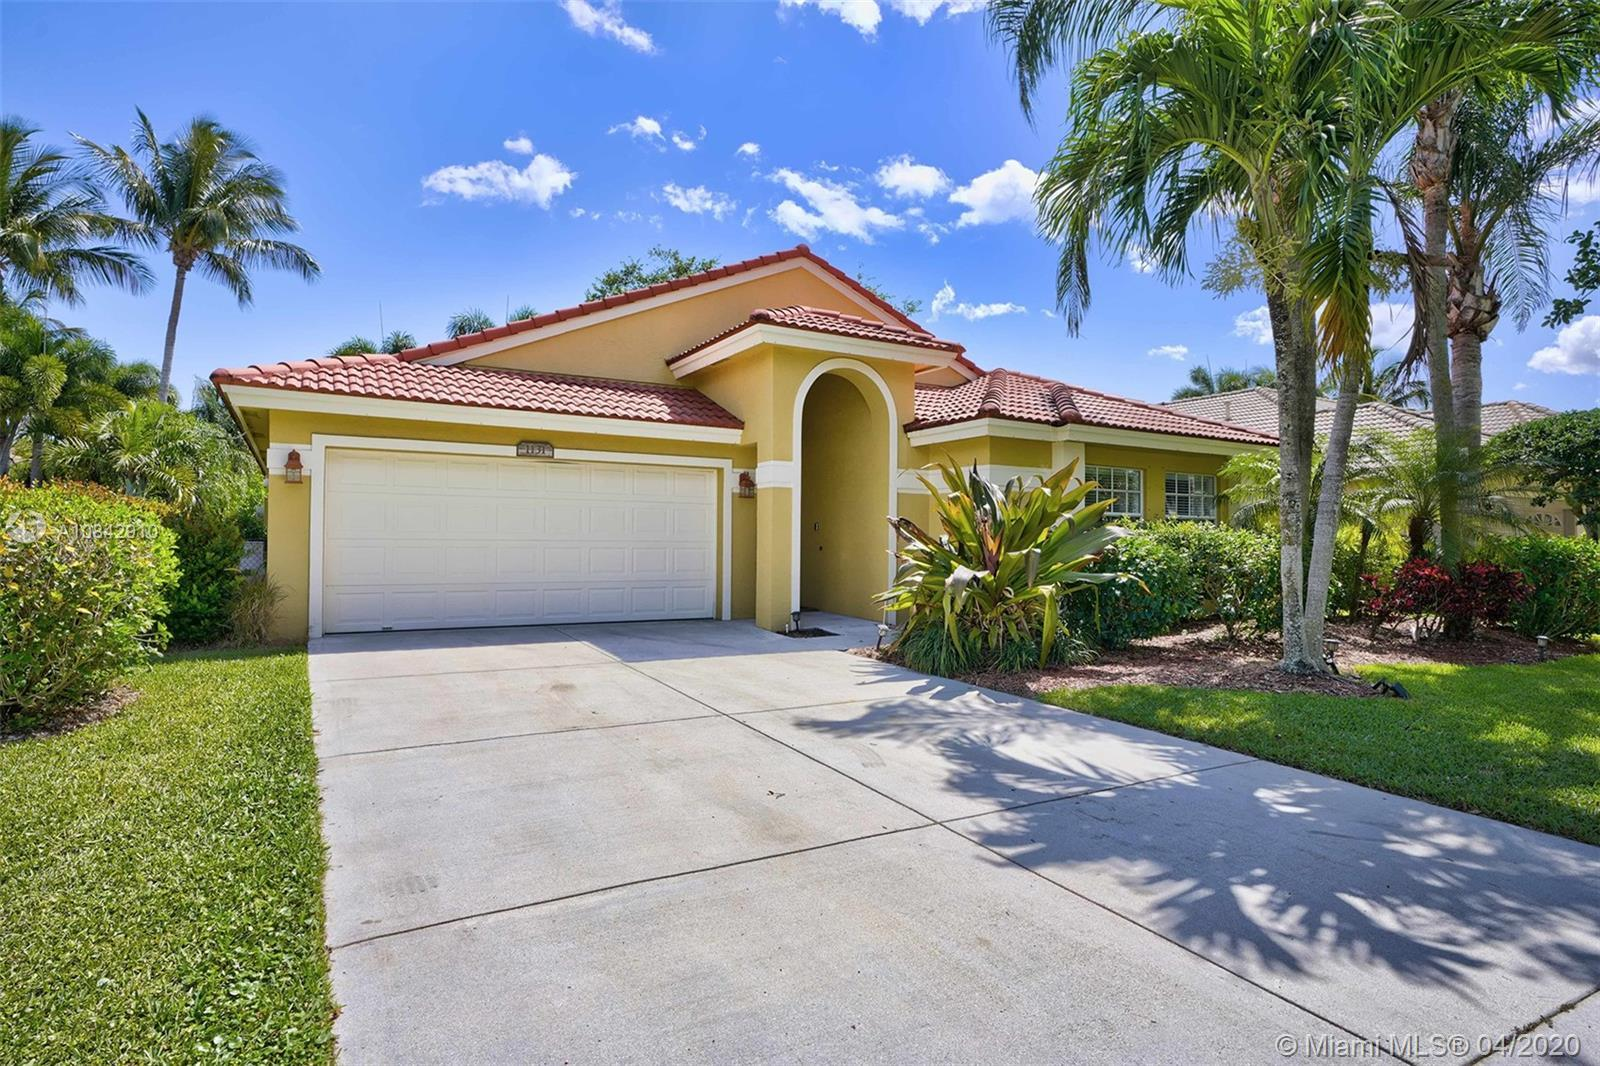 Spacious single-story, pool home in sought after Egret Landing!  Conveniently located with amenities